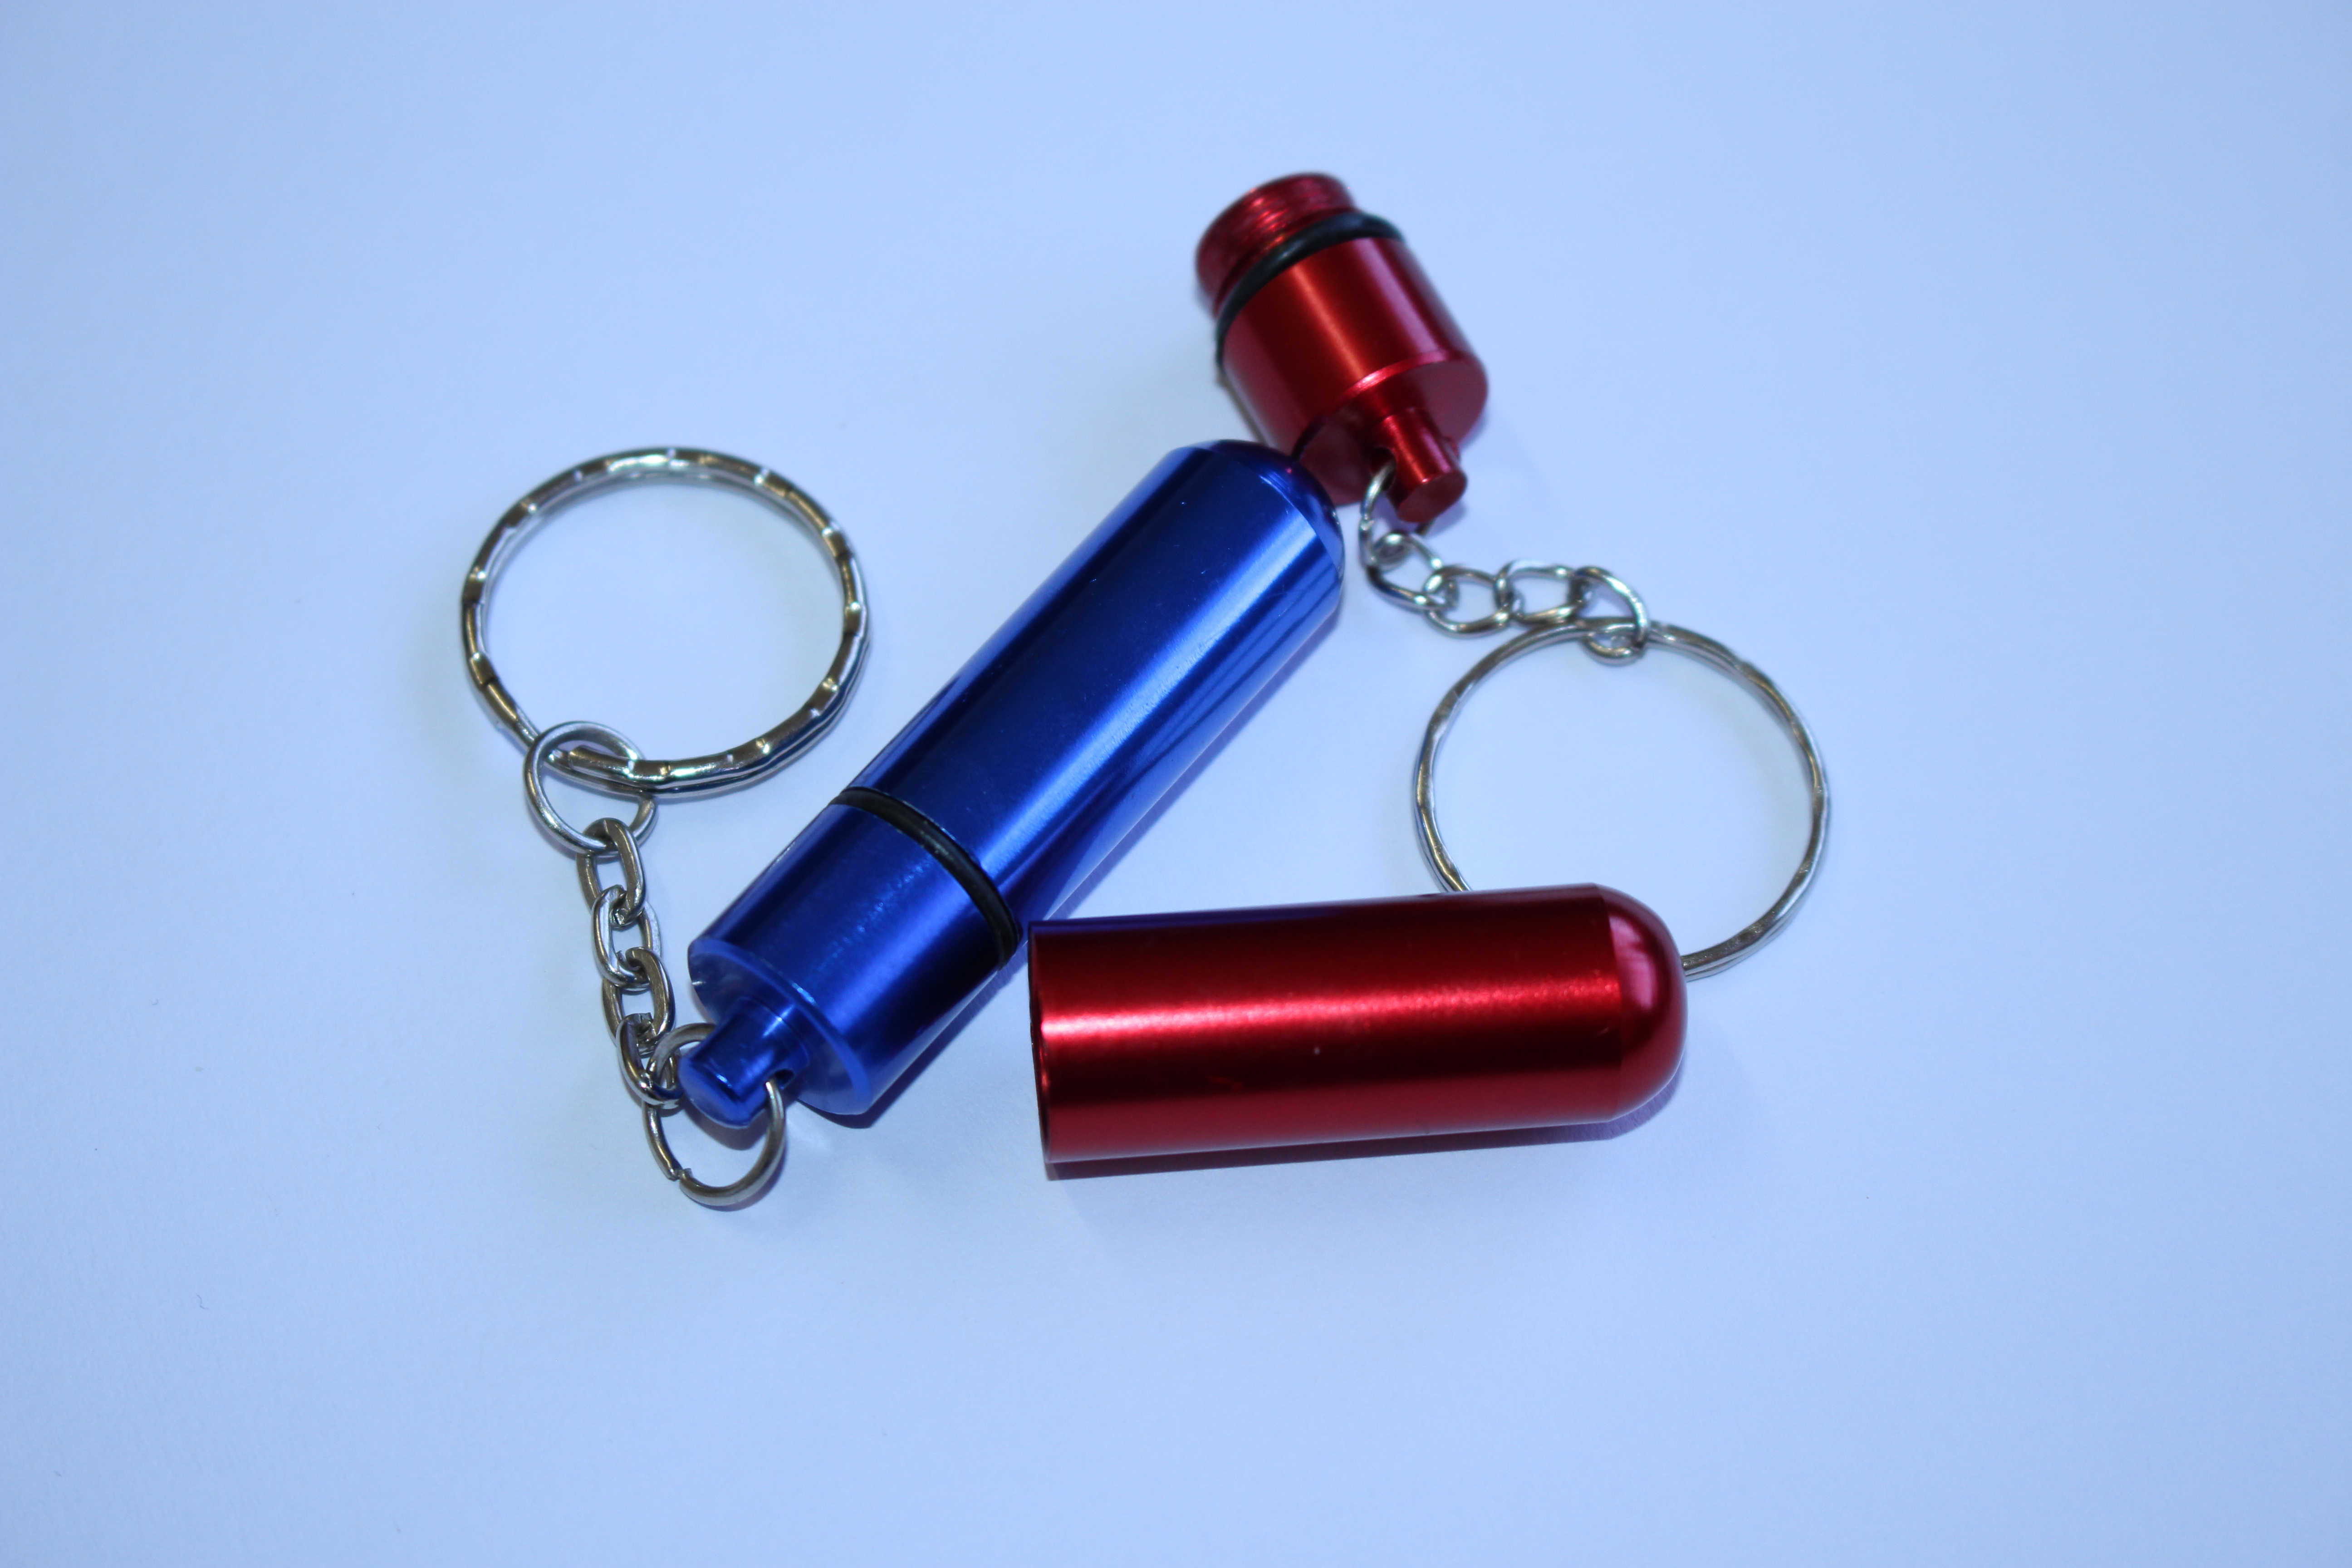 PILL ICE-CAPSULE Pill Ice-Capsule stores your Emergency Medication for severe Allergies when needed.  - Can be worn around the neck, key ring or wrist.  - Water and dust proof. - Available in Red and Blue